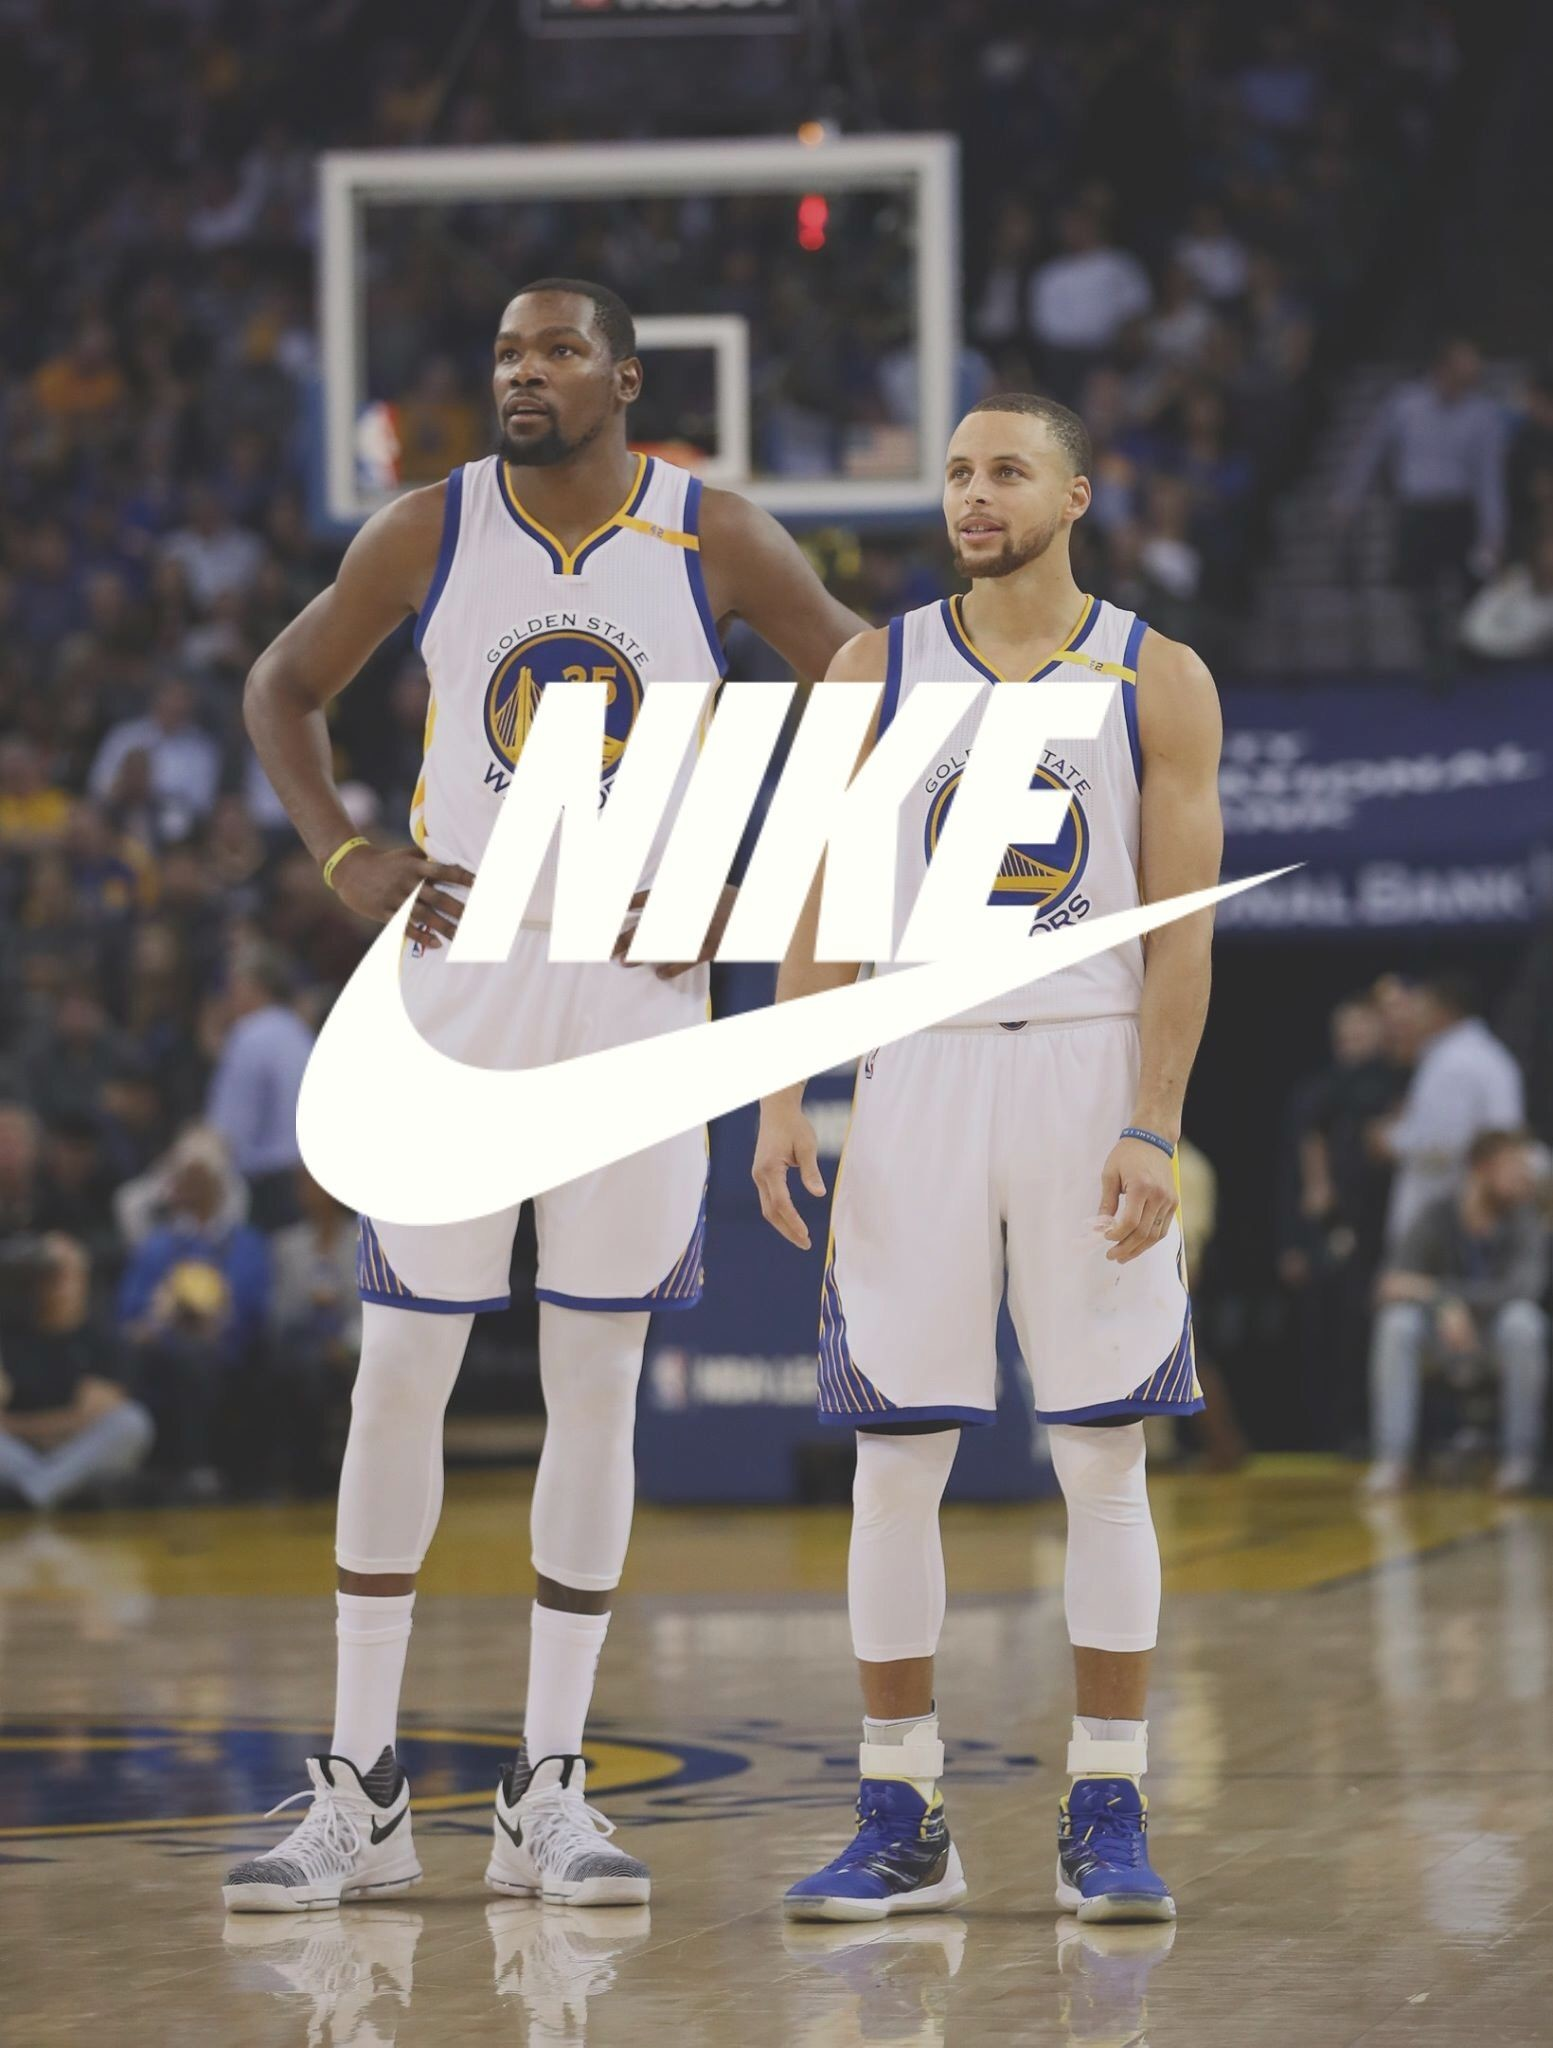 Res: 1553x2048, Nike Wallpaper Kevin Durant Stephen Curry